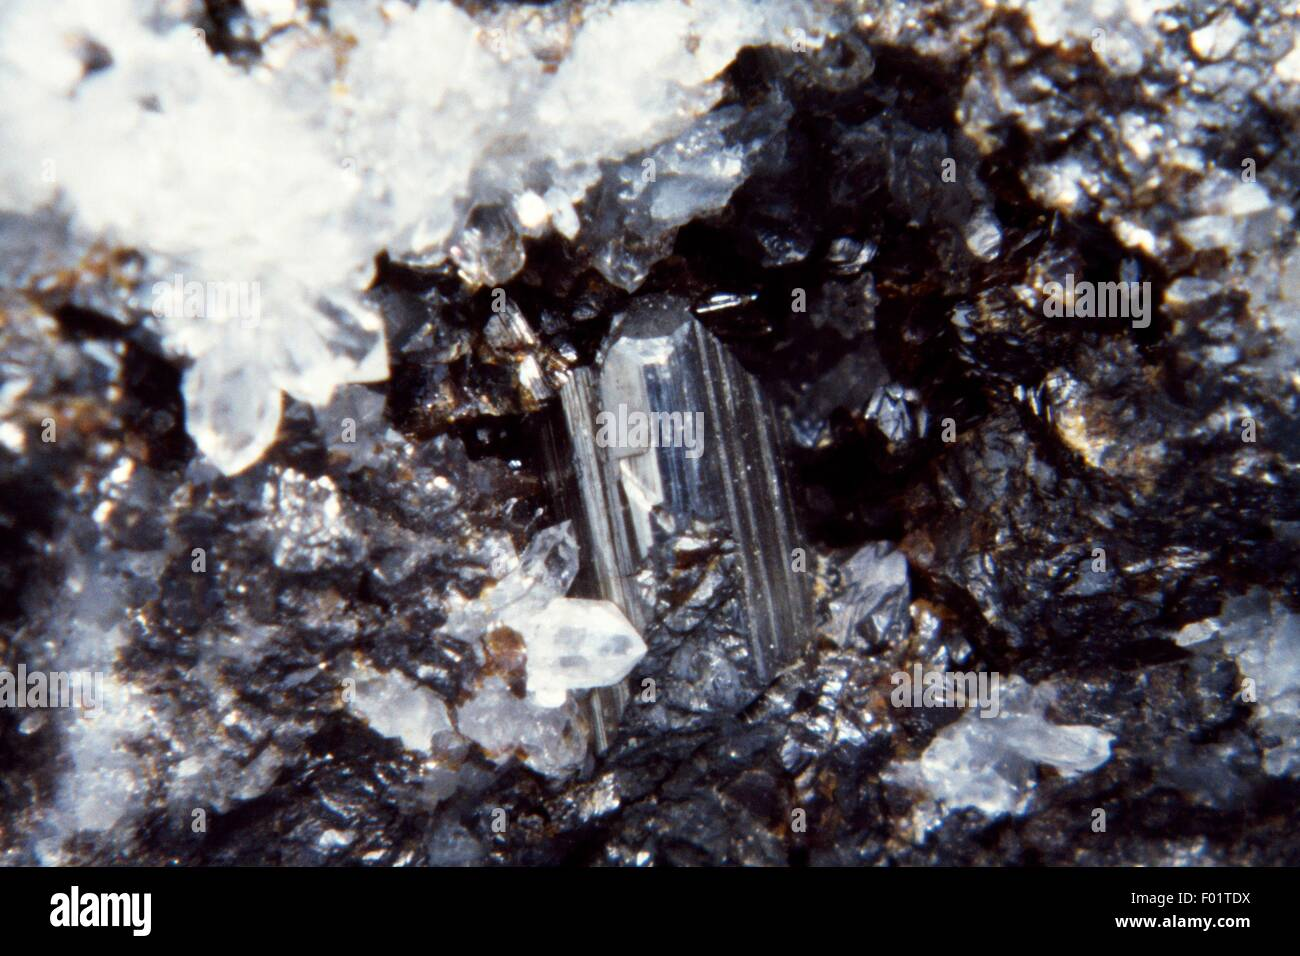 Diaphorite with Sphalerite, sulphides. - Stock Image